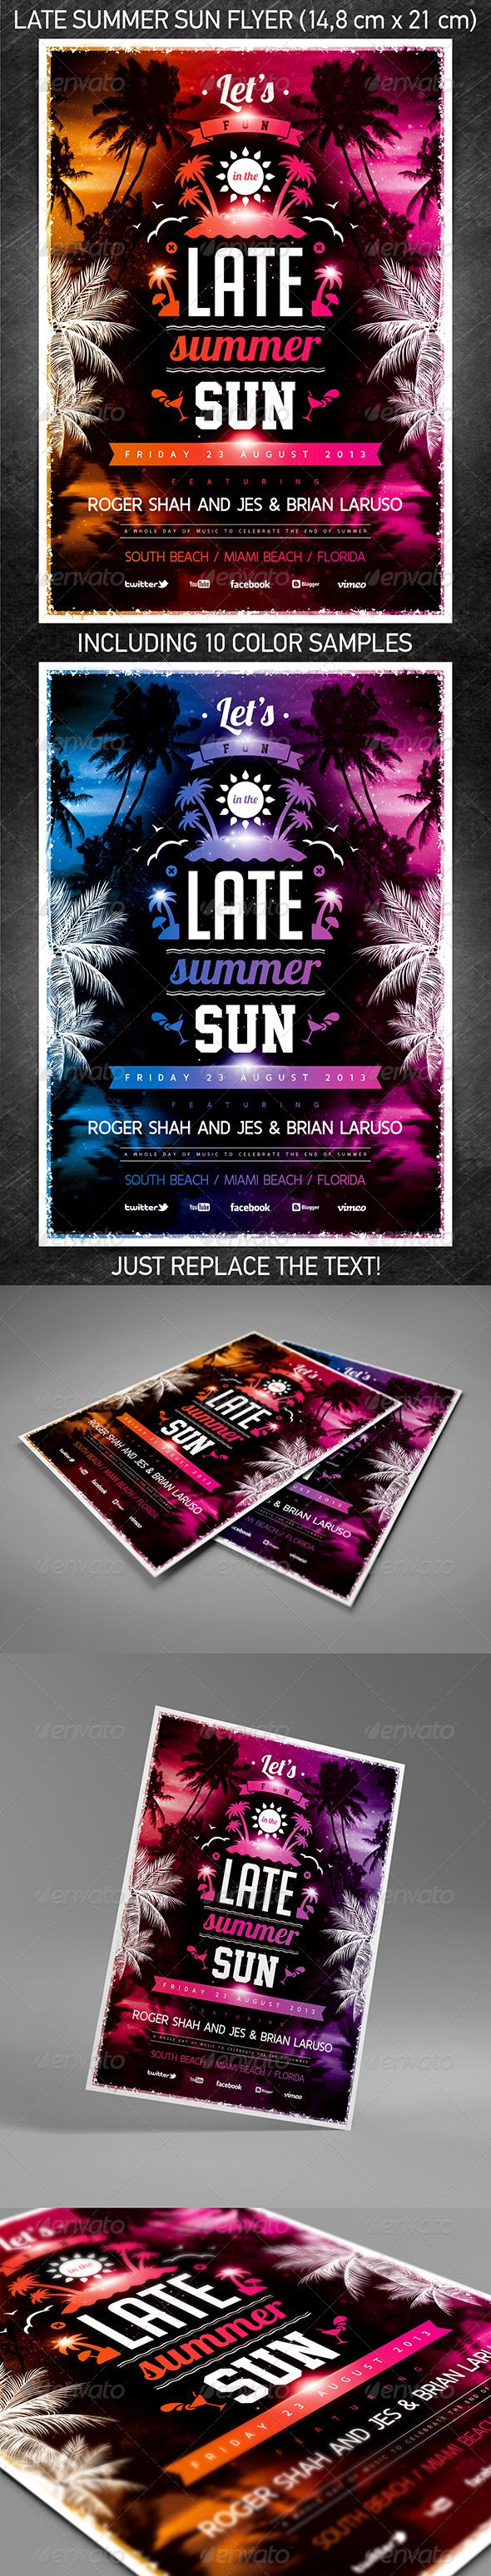 """""""Late Summer Sun Party Flyer"""" for a mainstream music summer/spring event or any other night club event. You can download and learn more about this PSD template at the following link – http://graphicriver.net/item/late-summer-sun-party-flyer/5287562?ref=4ustudio More flyers and posters here: http://graphicriver.net/user/4ustudio?ref=4ustudio"""